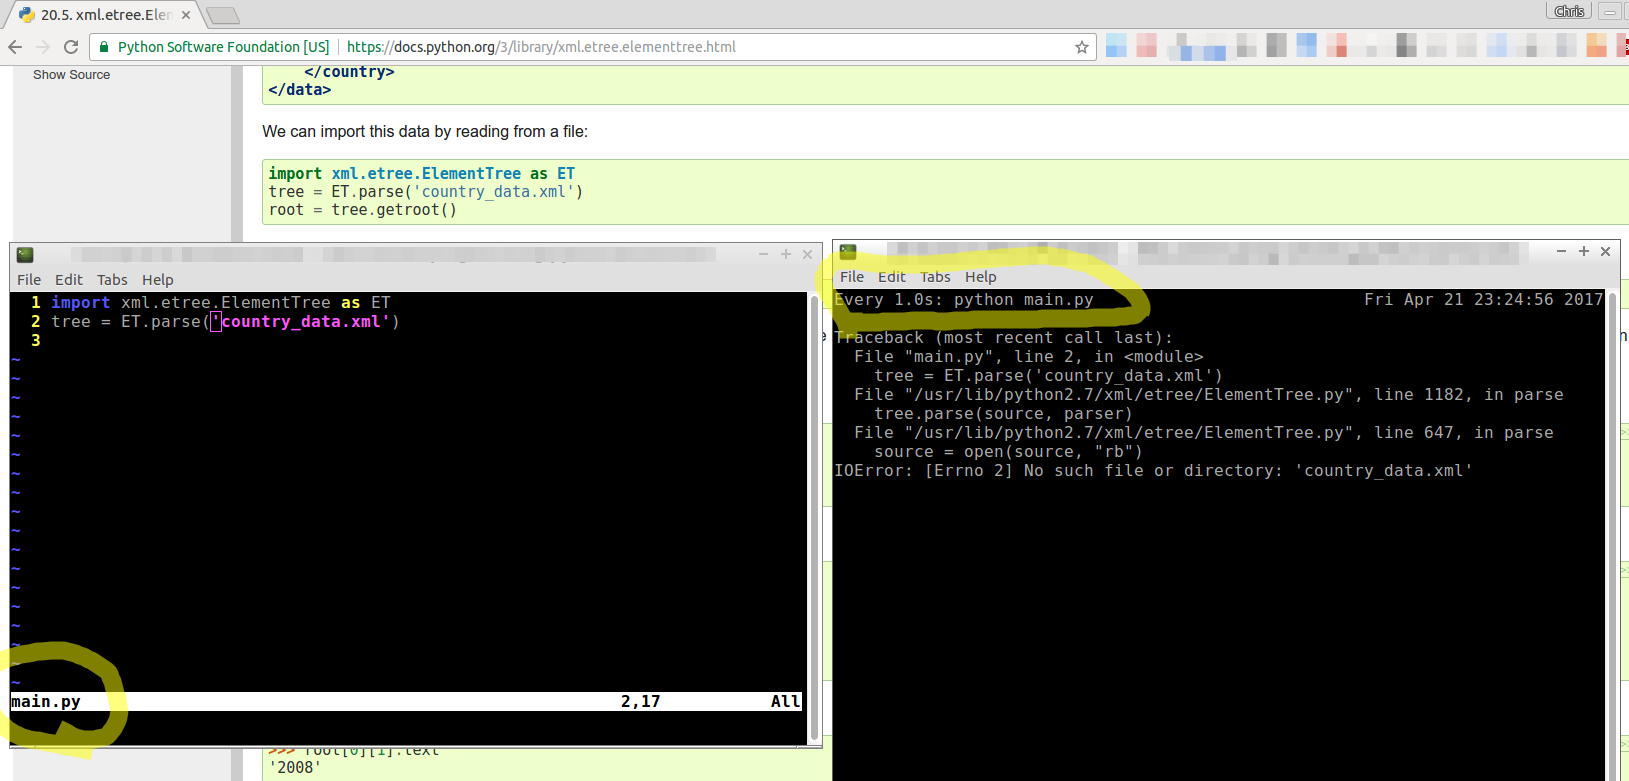 Using watch to run a command every one second and observe the output whilst programming